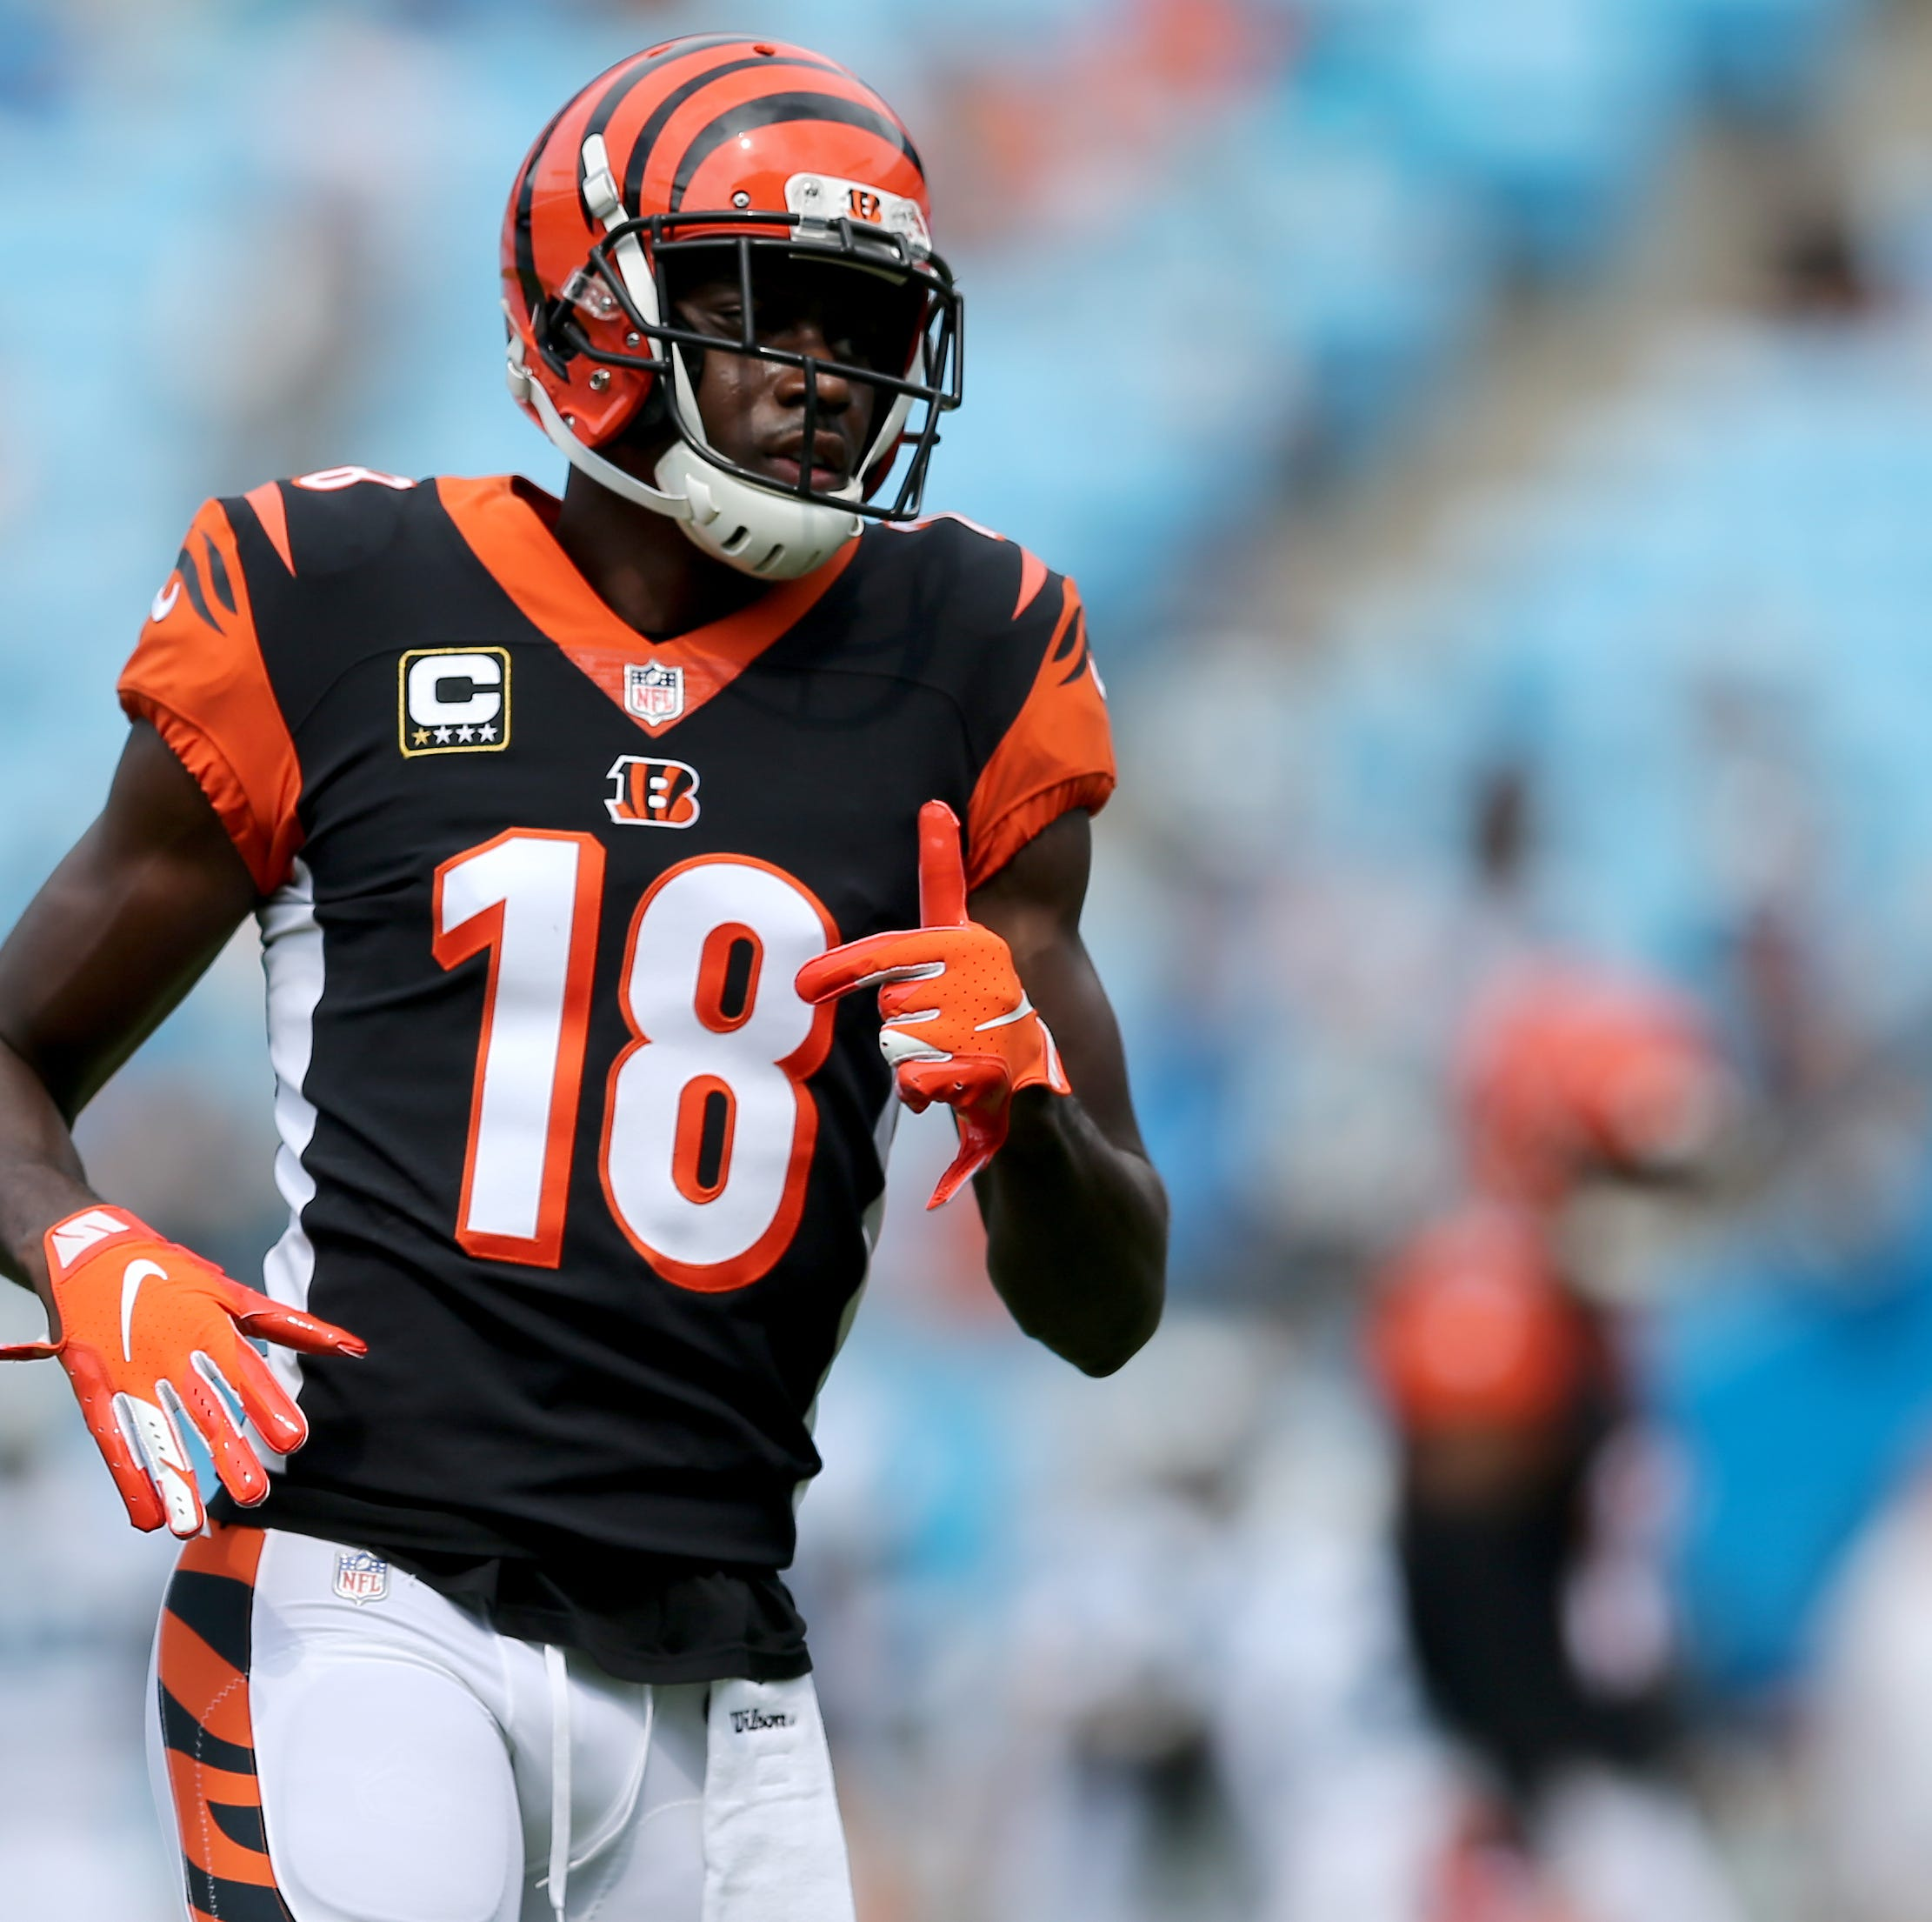 Cincinnati Bengals at Carolina Panthers: A.J. Green injured in Bengals loss